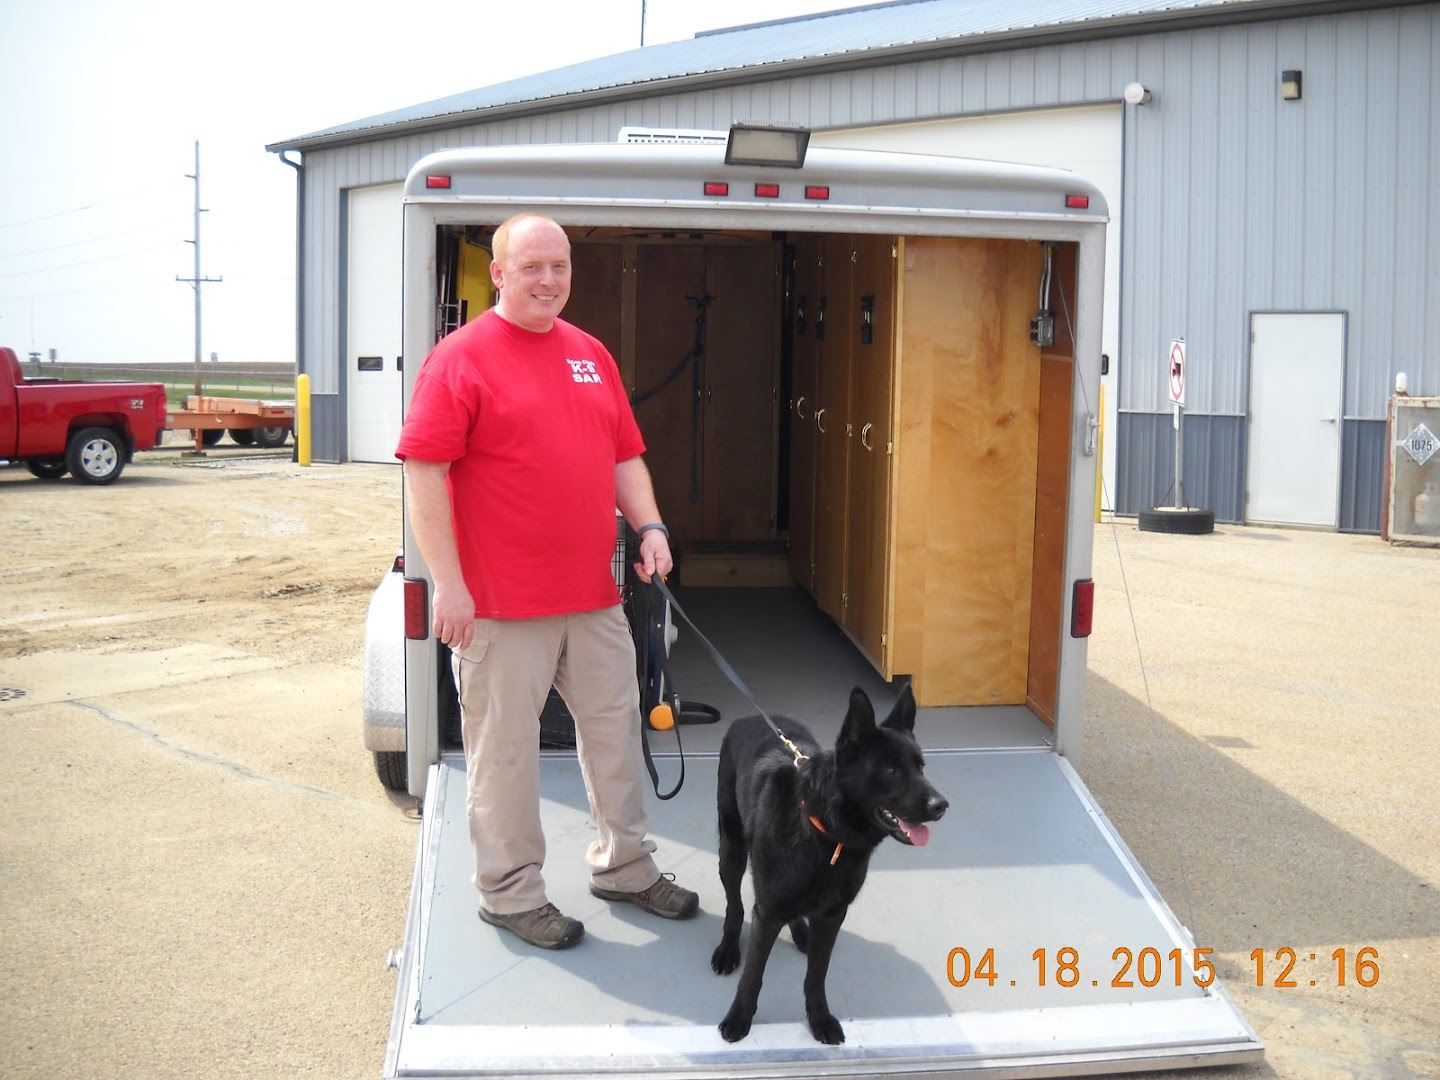 Emergency Management Representative of Search and Rescue with black dog on leash